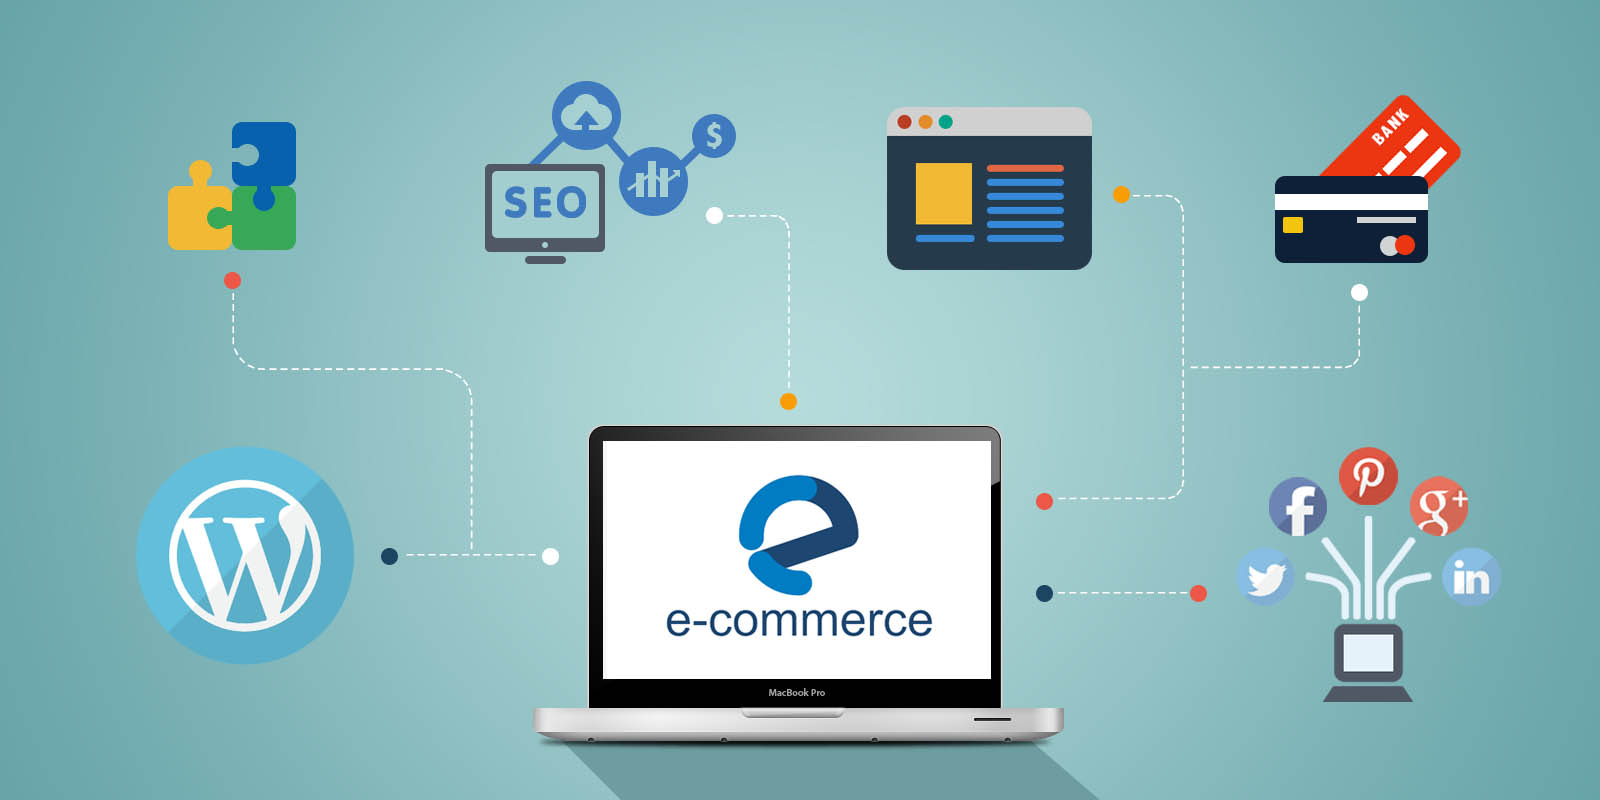 How-To-Prepare-For-An-E-commerce-Website.jpg